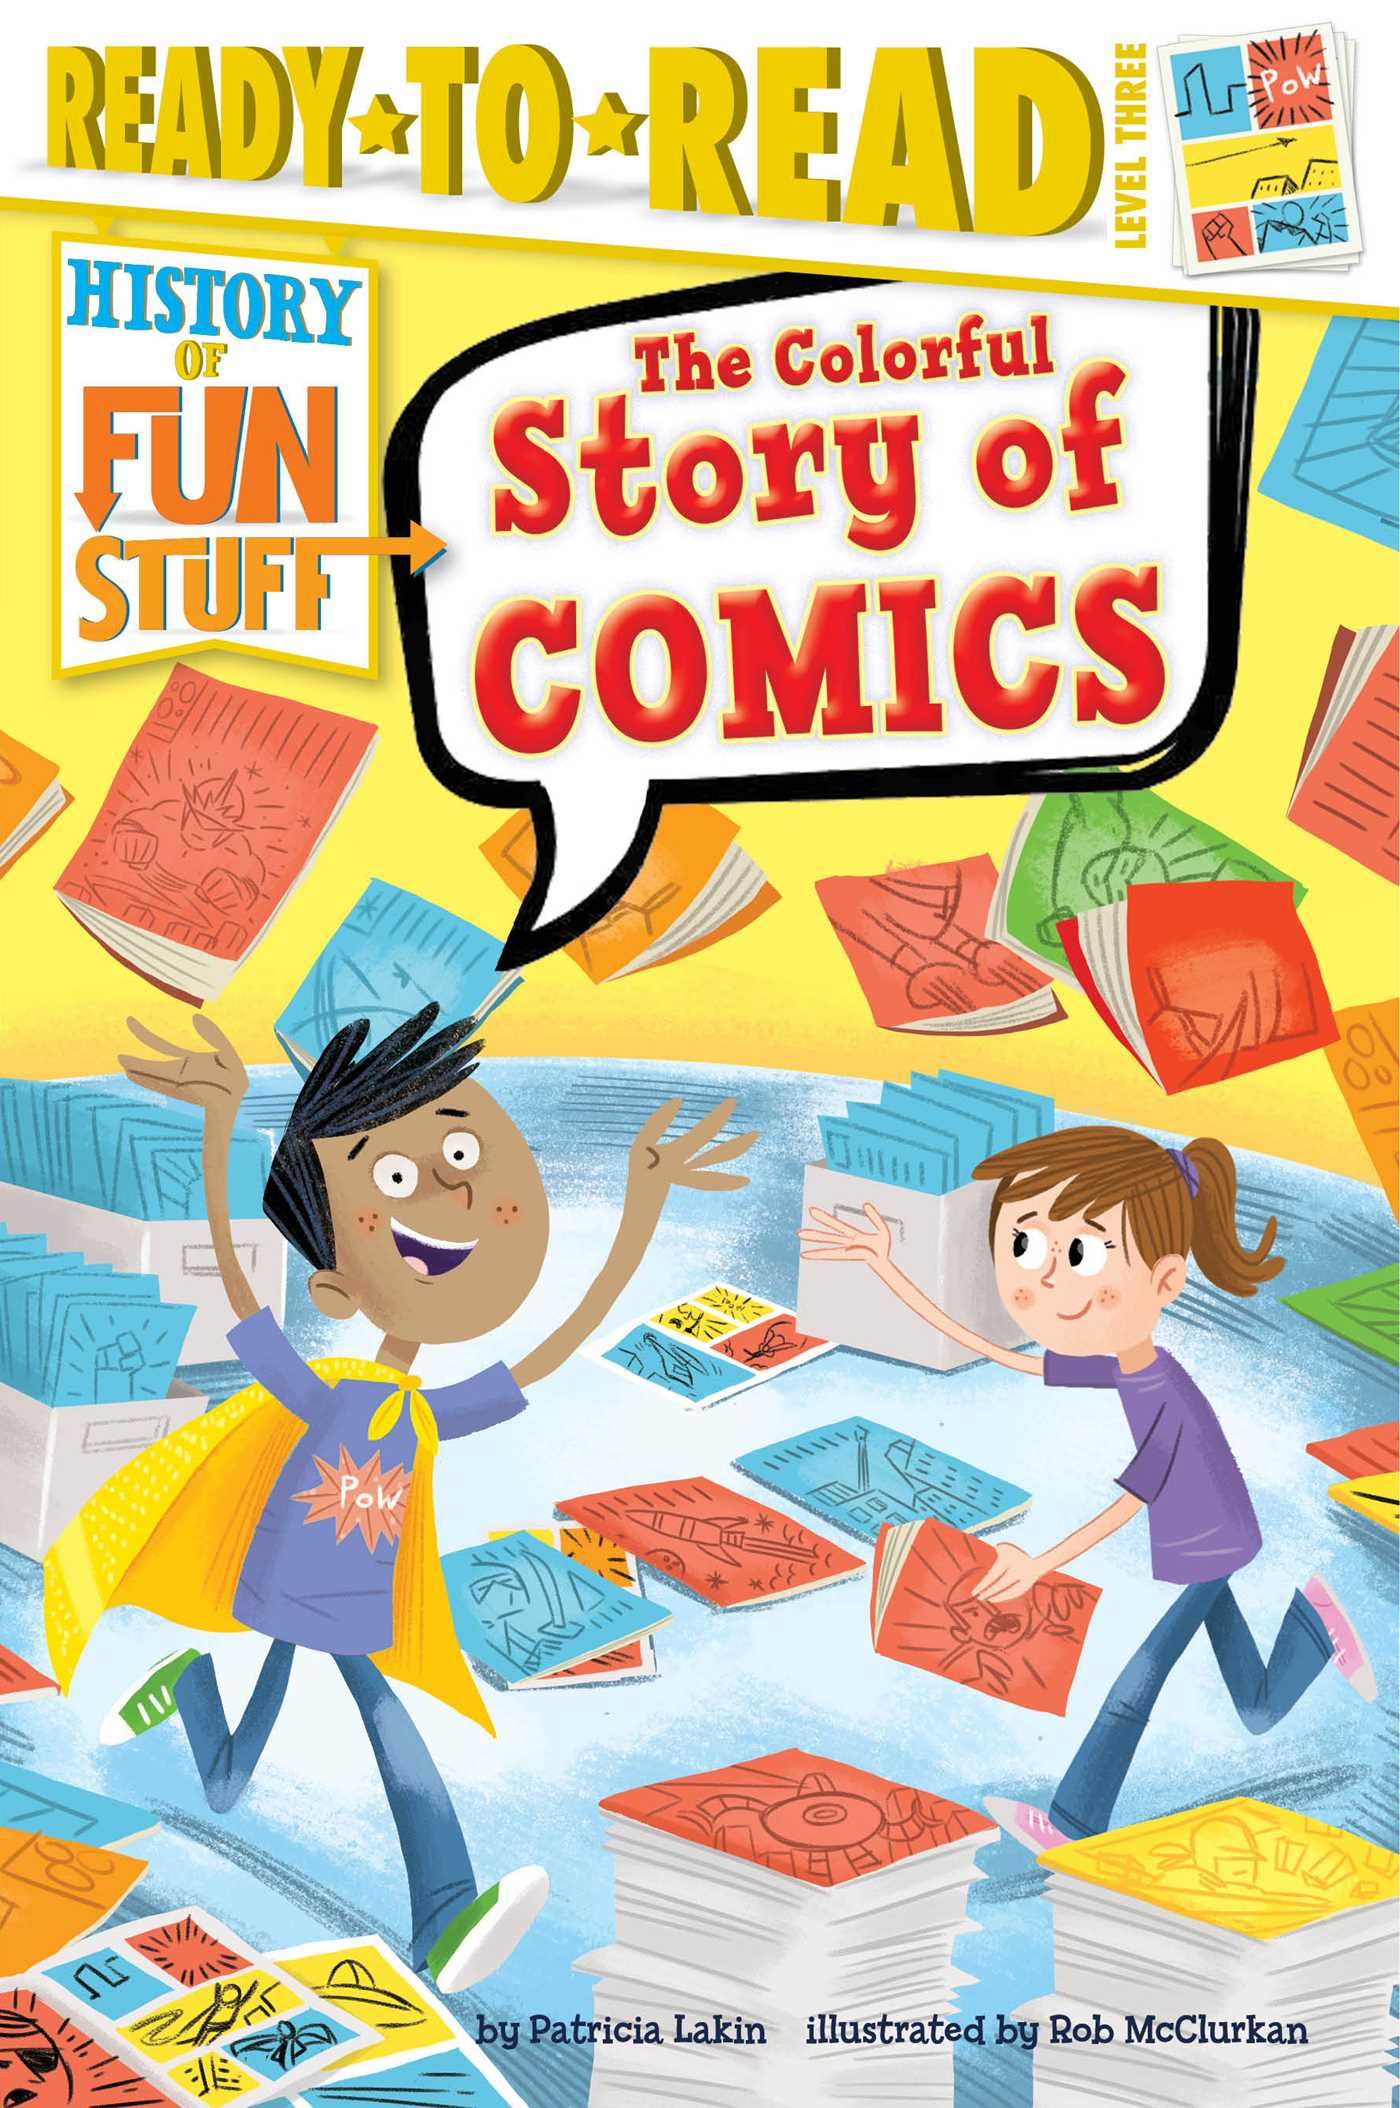 The colorful story of comics 9781481471442 hr